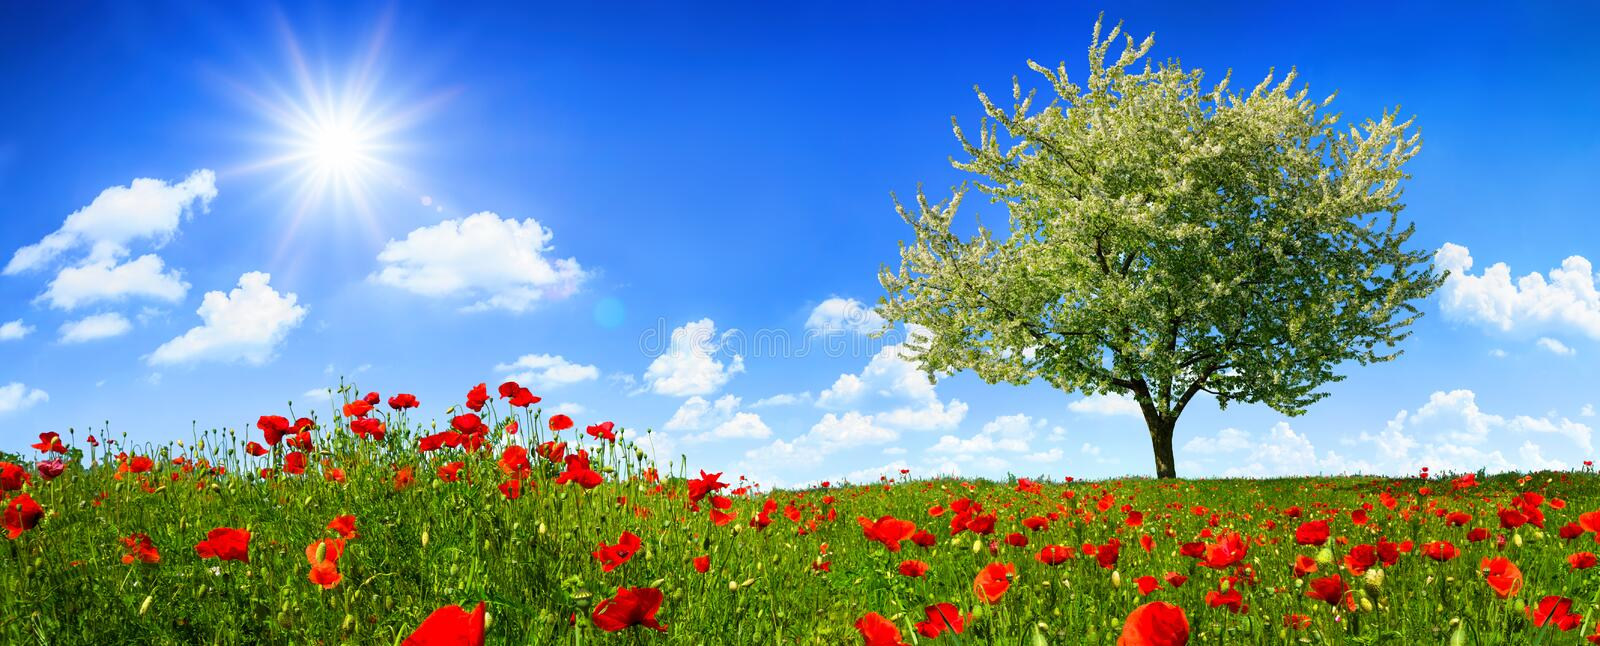 Blossoming lone tree on a colorful meadow with poppy flowers. With the sun shining bright in the deep blue sky stock photos